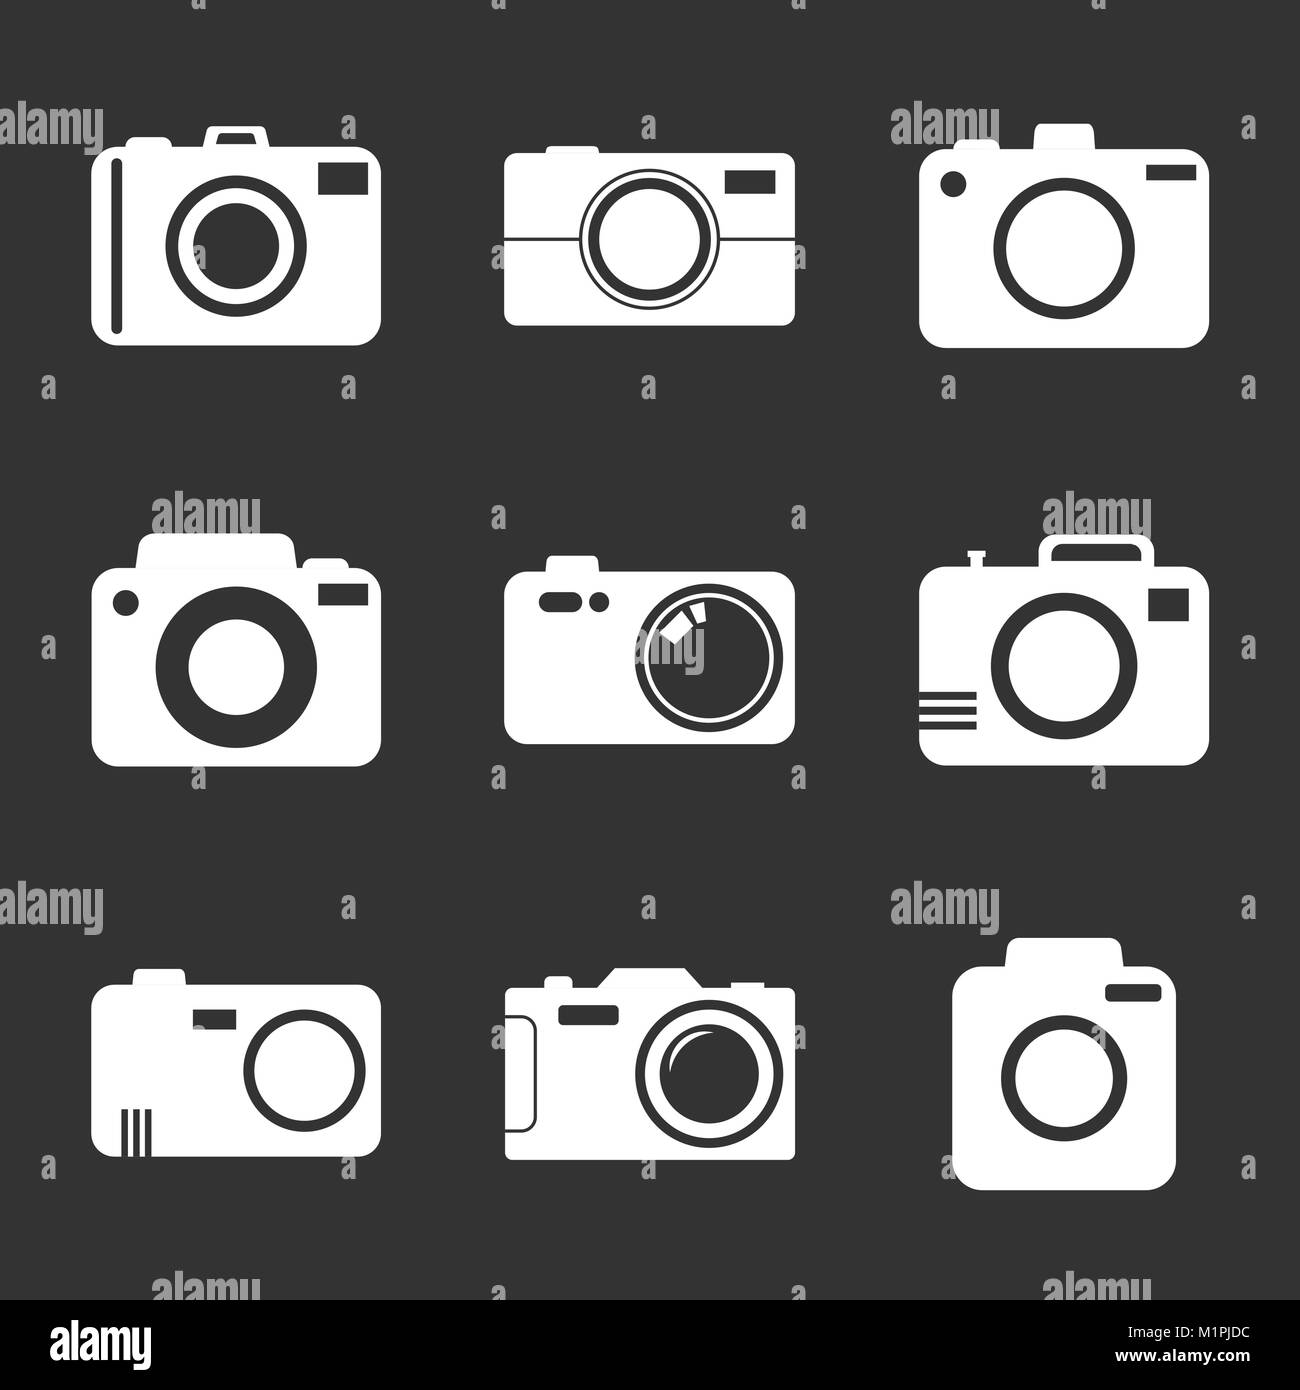 Camera icon set on black background. Vector illustration in flat style with photography icons. - Stock Vector